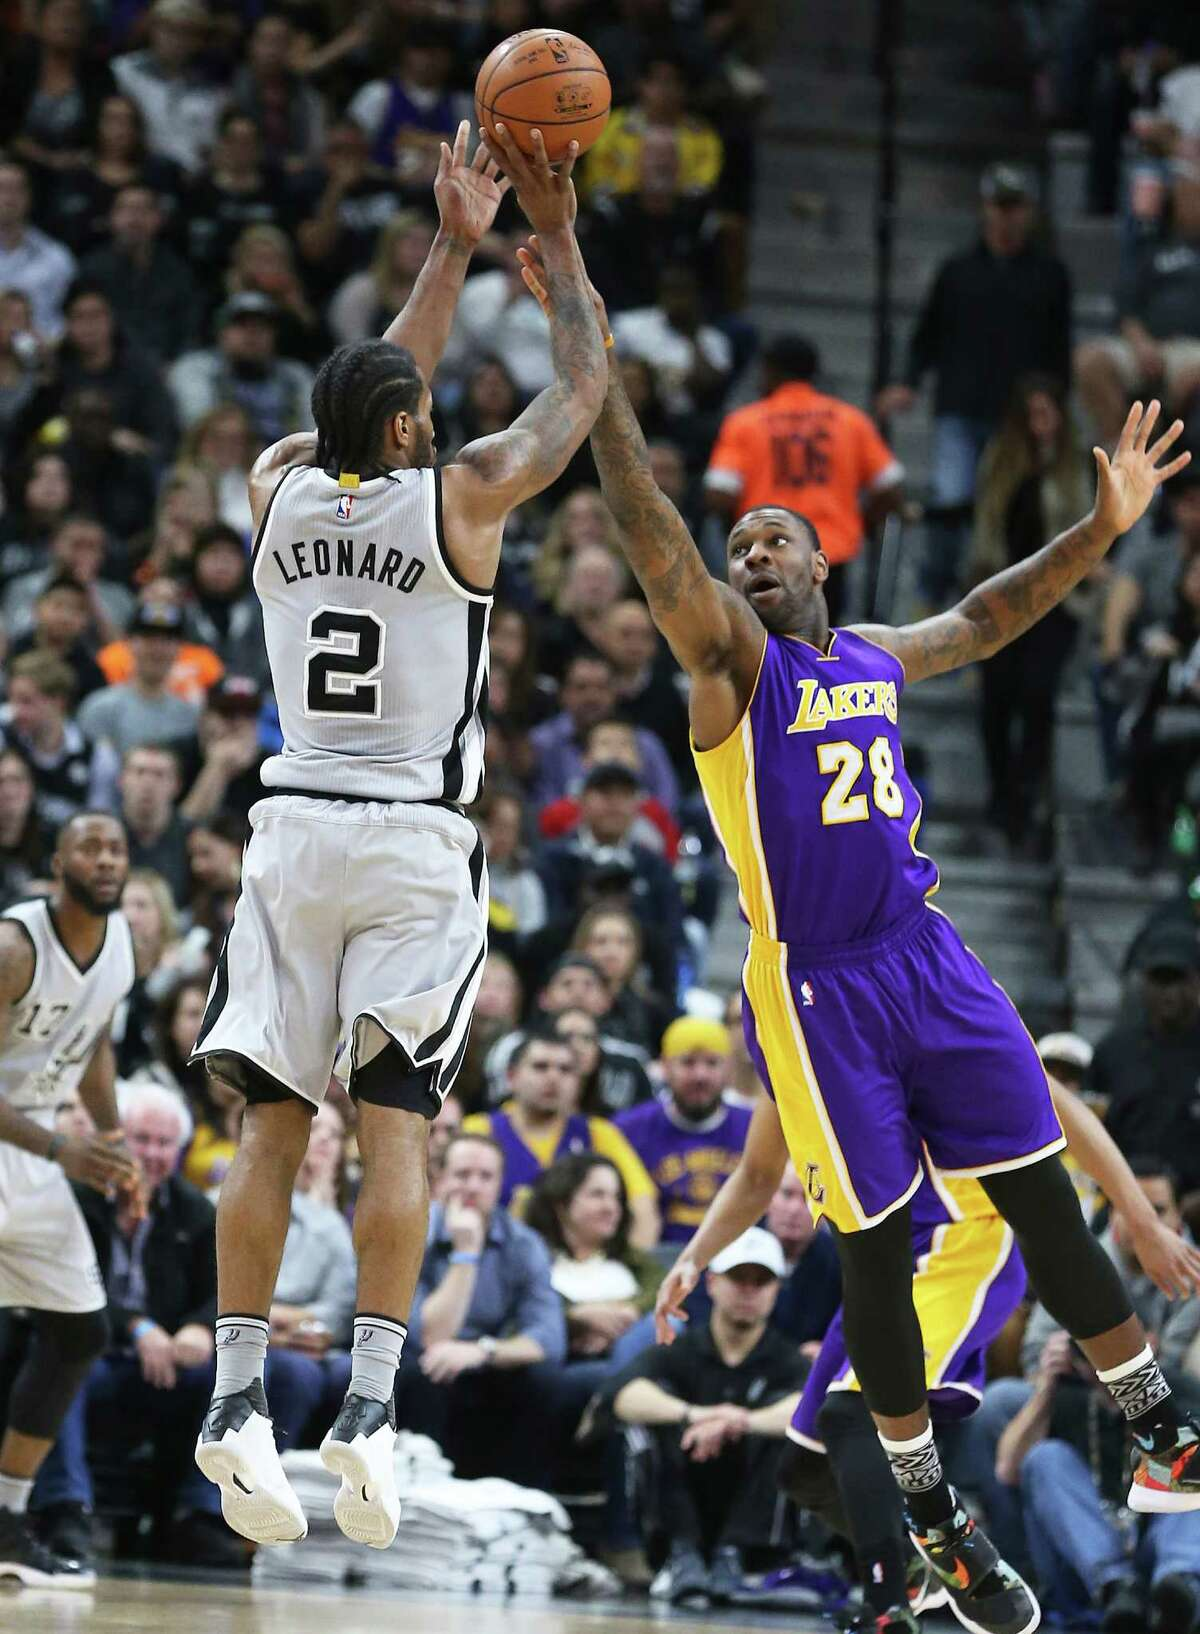 Kawhi Leonard puts a shot up over Tarik Black as the Spurs host the Lakers at the AT&T Center on February 6, 2016.